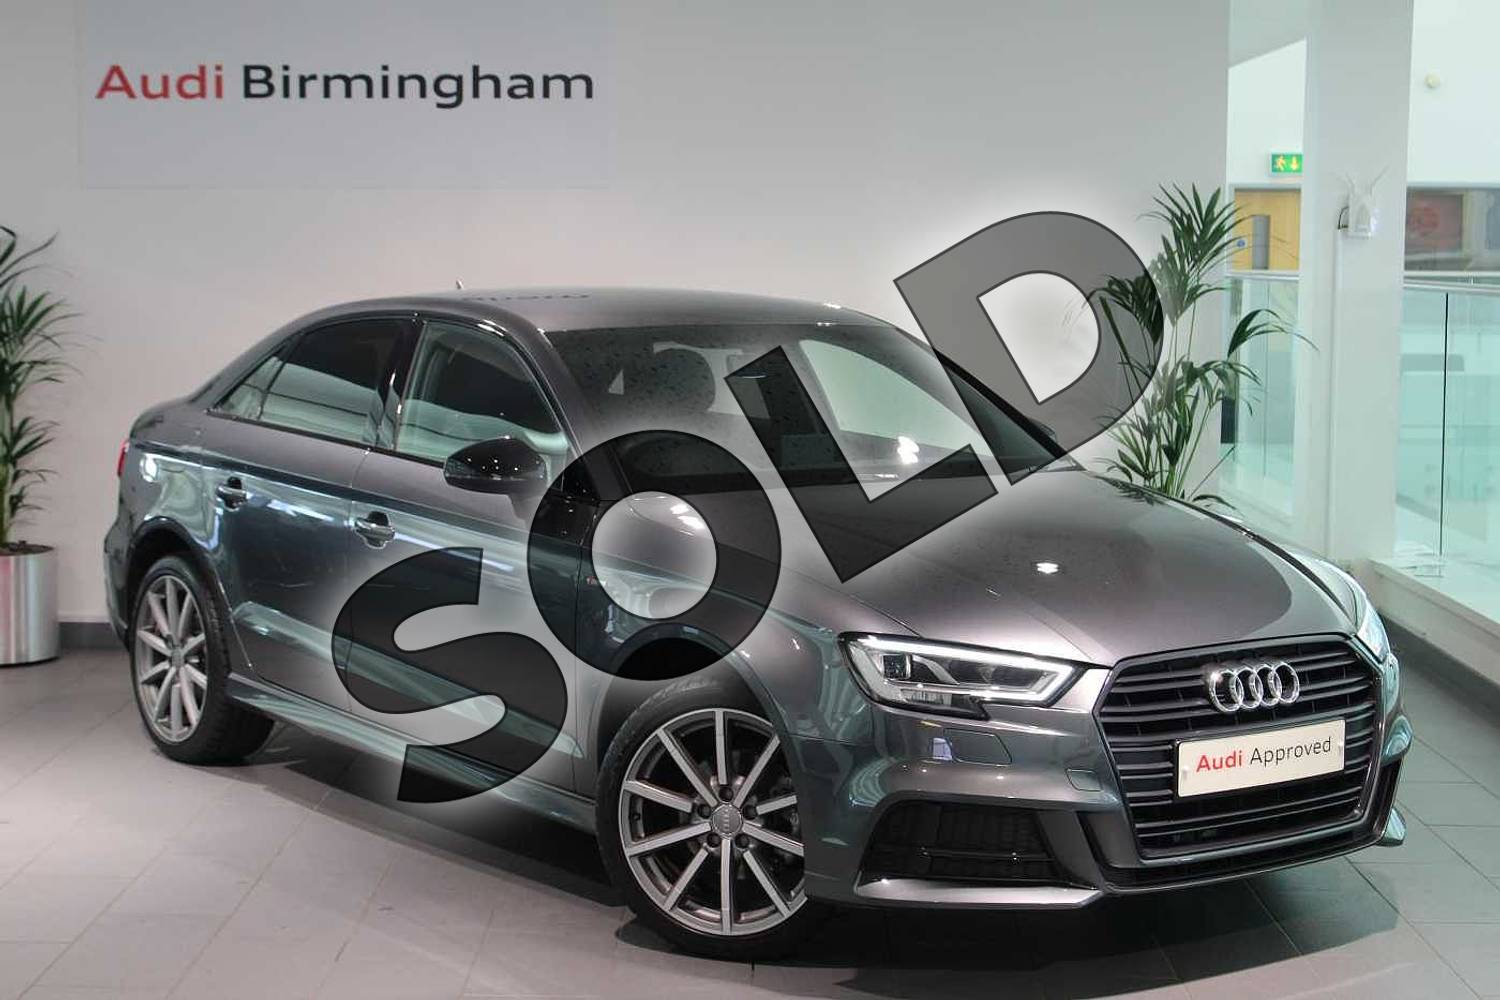 2018 Audi A3 Saloon Special Editions Special Editions 1.6 TDI 116 Black Edition 4dr in Daytona Grey Pearlescent at Birmingham Audi